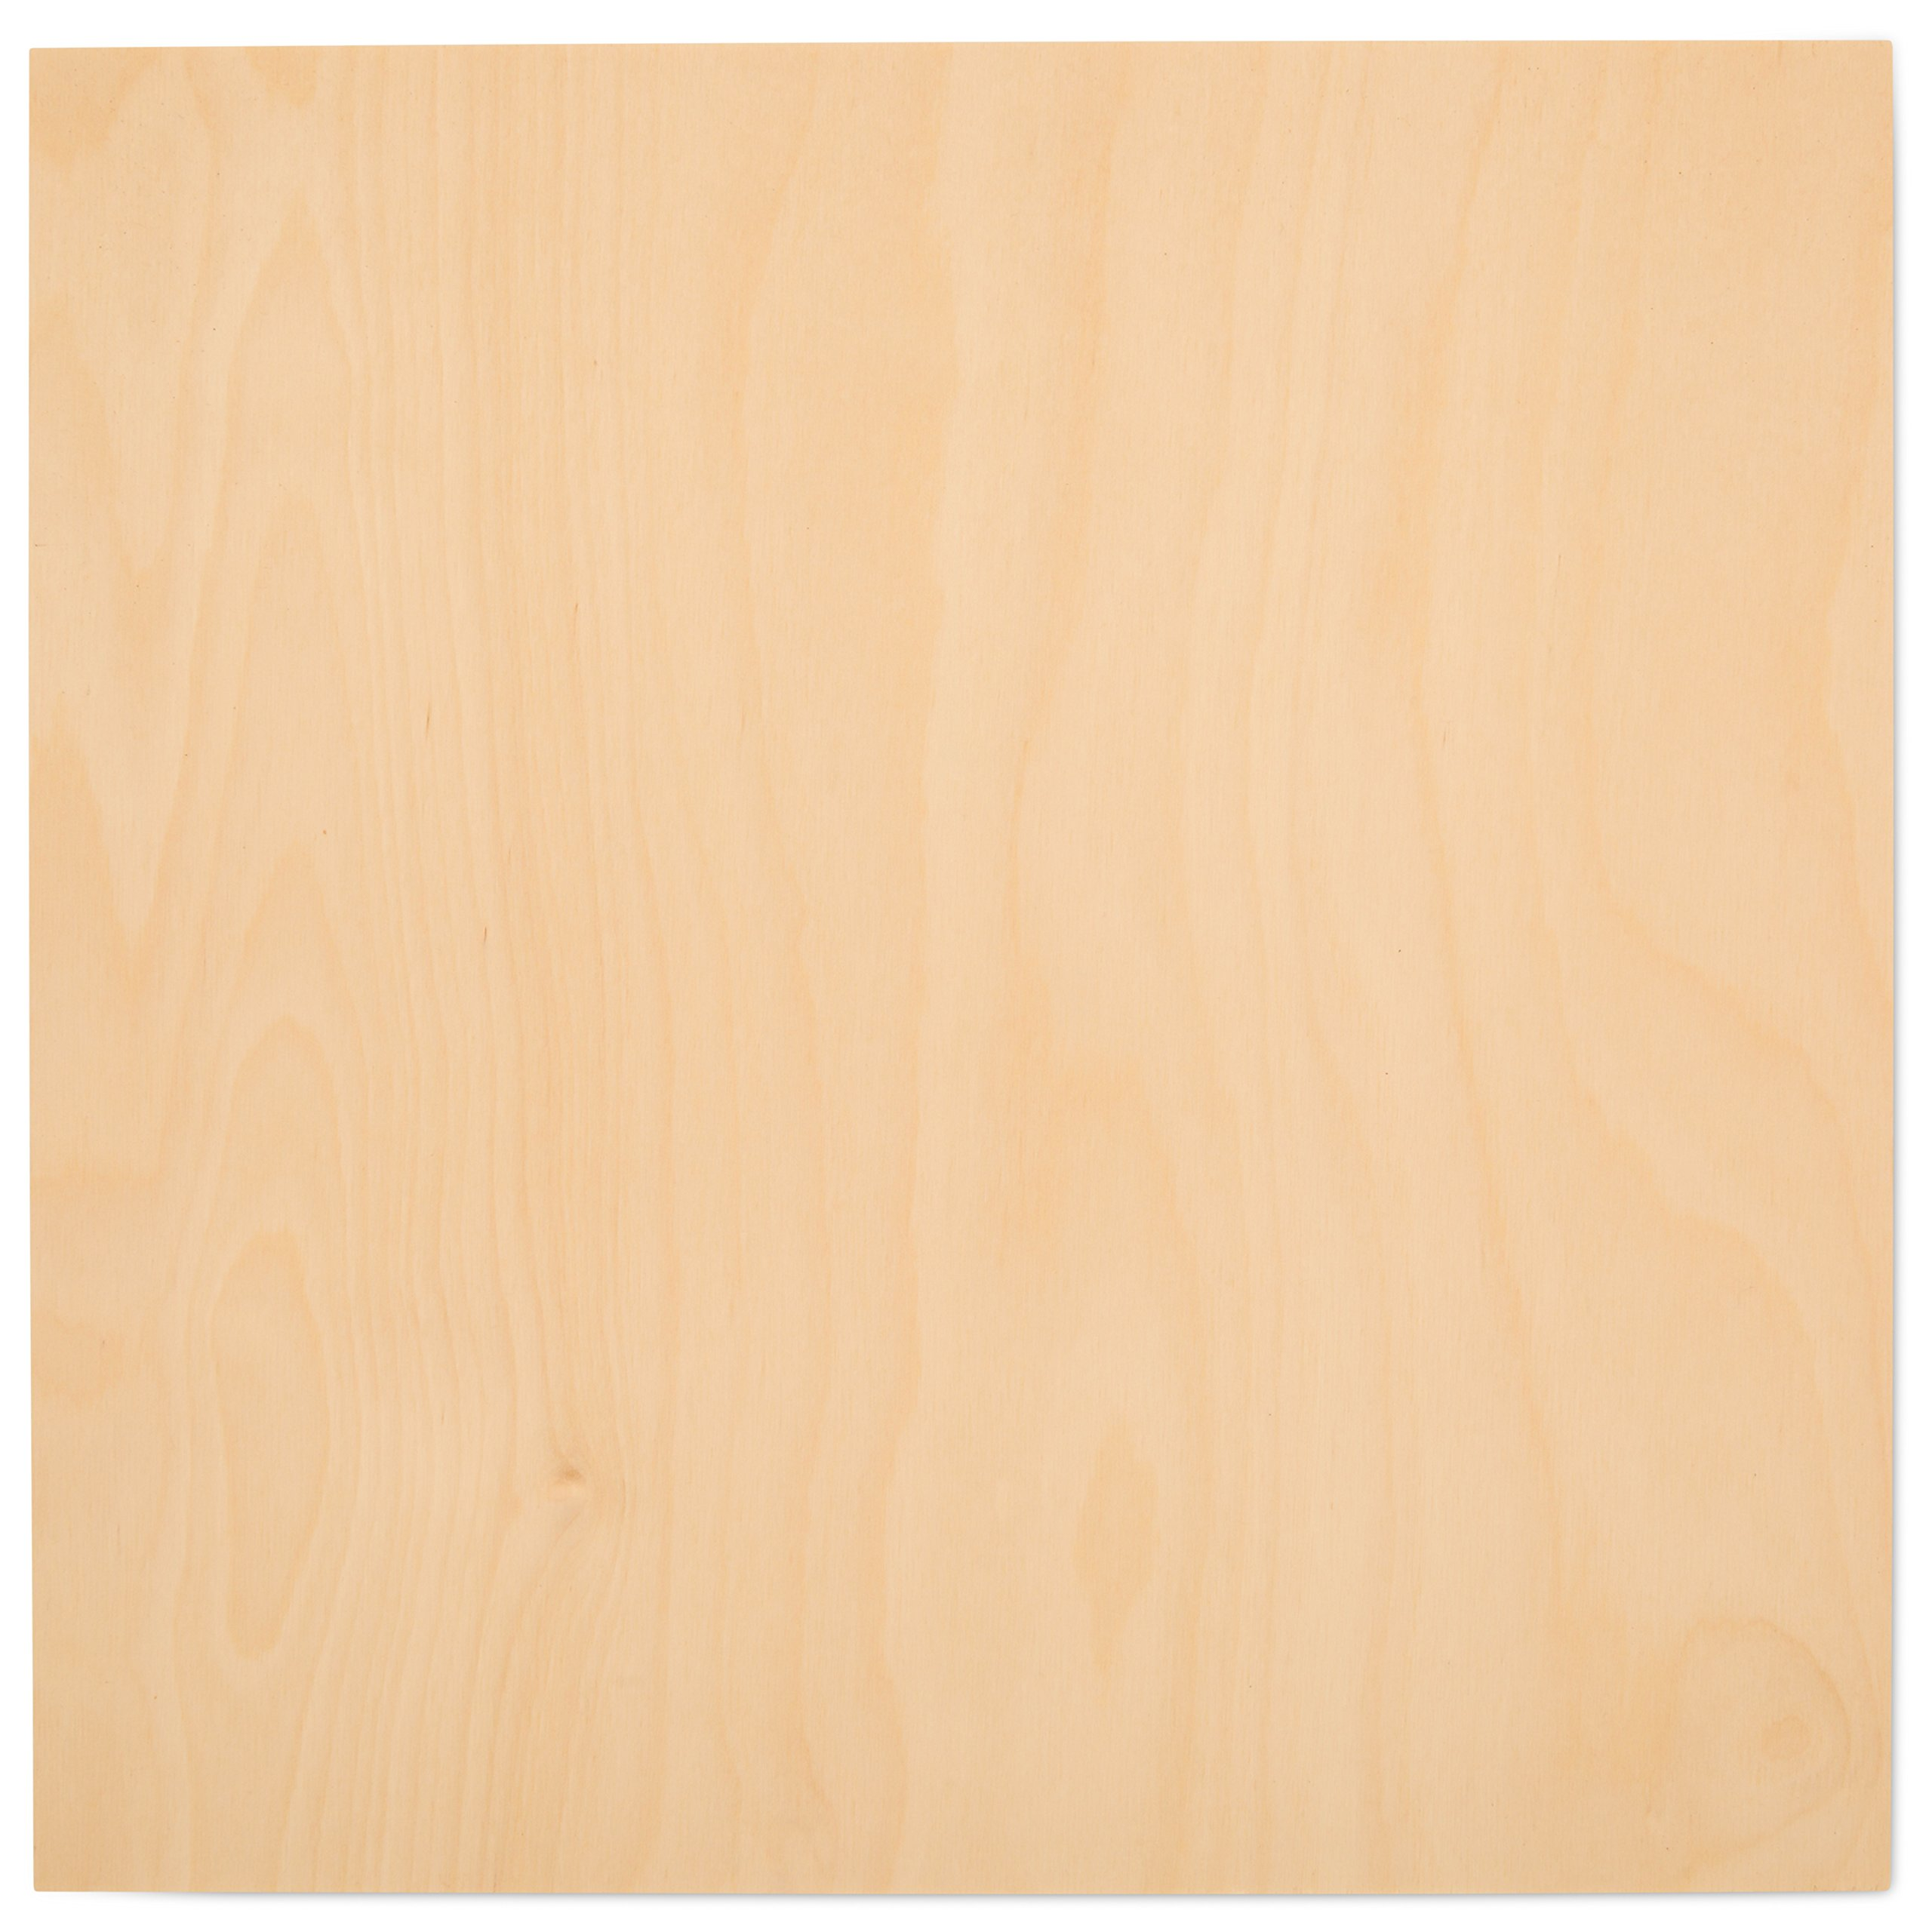 "3 mm 1/8"" X 12"" X 12"" Premium Baltic Birch Plywood – B/BB Grade - 45 Flat Sheets By Woodpeckers"